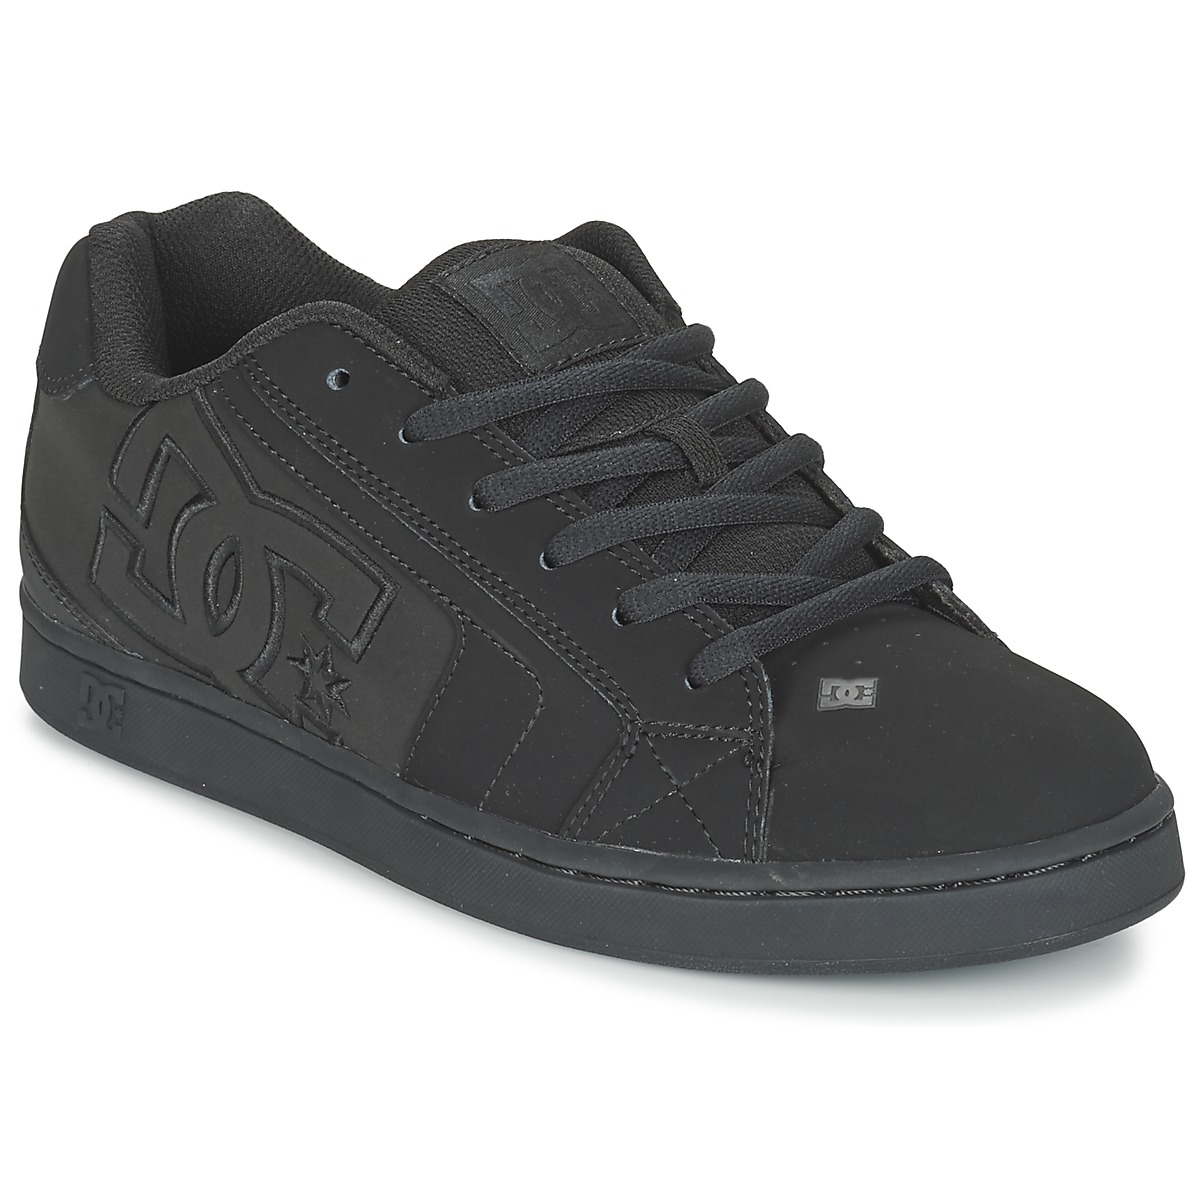 dc shoes net noir noir noir livraison gratuite avec chaussures chaussures. Black Bedroom Furniture Sets. Home Design Ideas